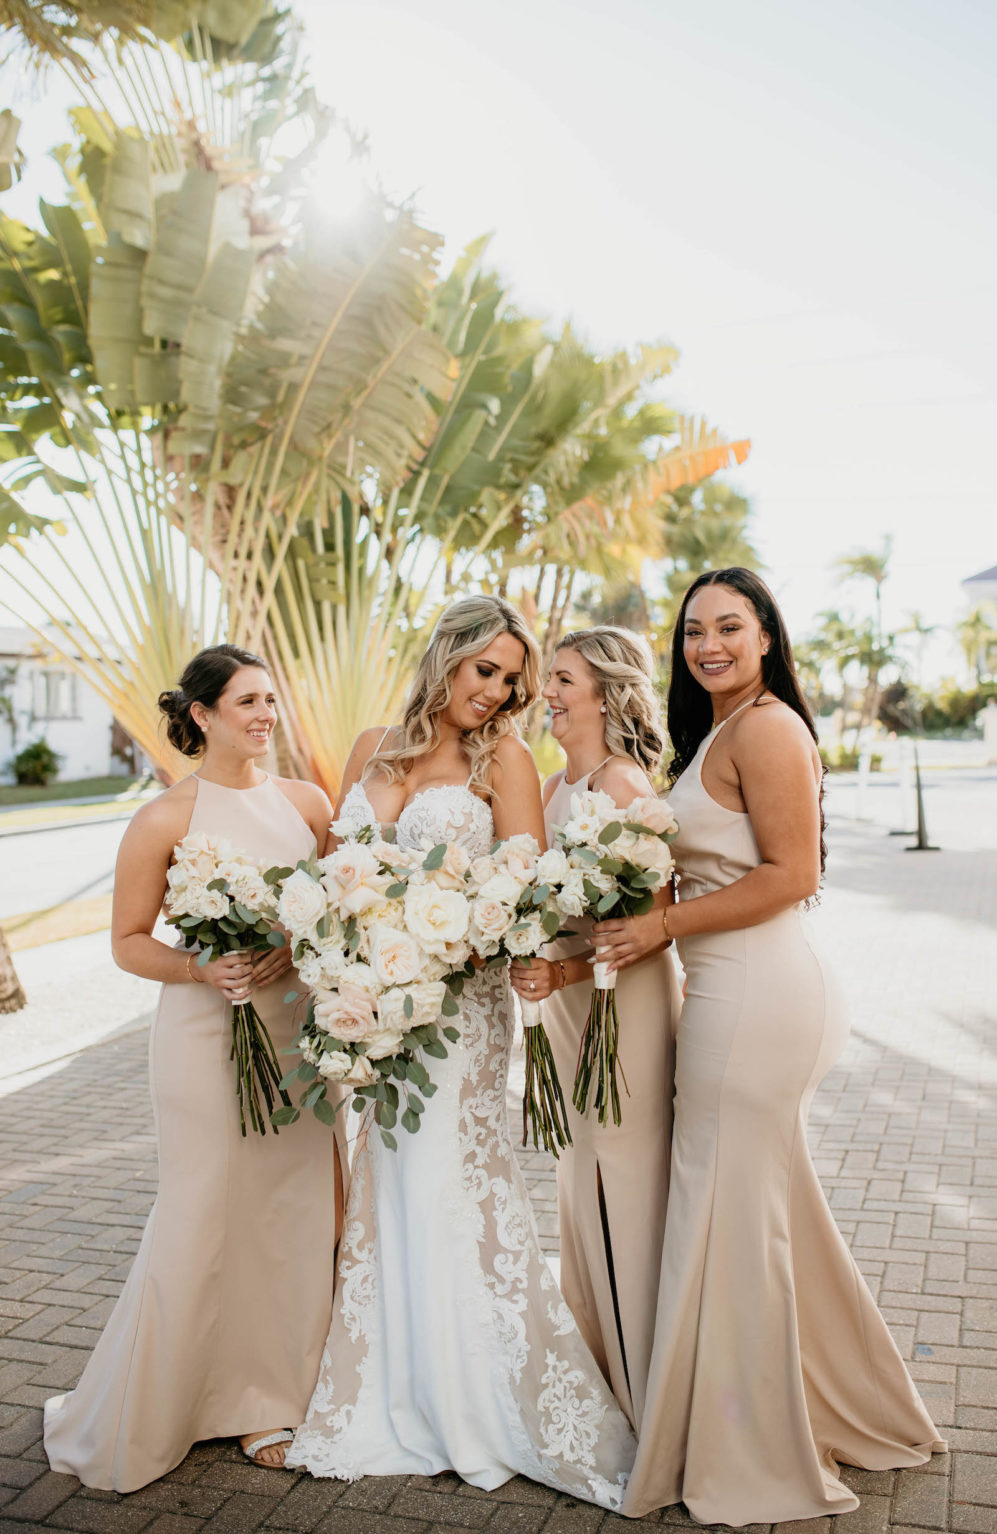 St. Petersburg Bride in Romantic Sweetheart V Neck Lace and Illusion Spaghetti Strap Wedding Dress Holding Lush White, Ivory and Blush Pink Roses and Eucalyptus Floral Bouquet, Bridesmaids in Beige Matching Dresses